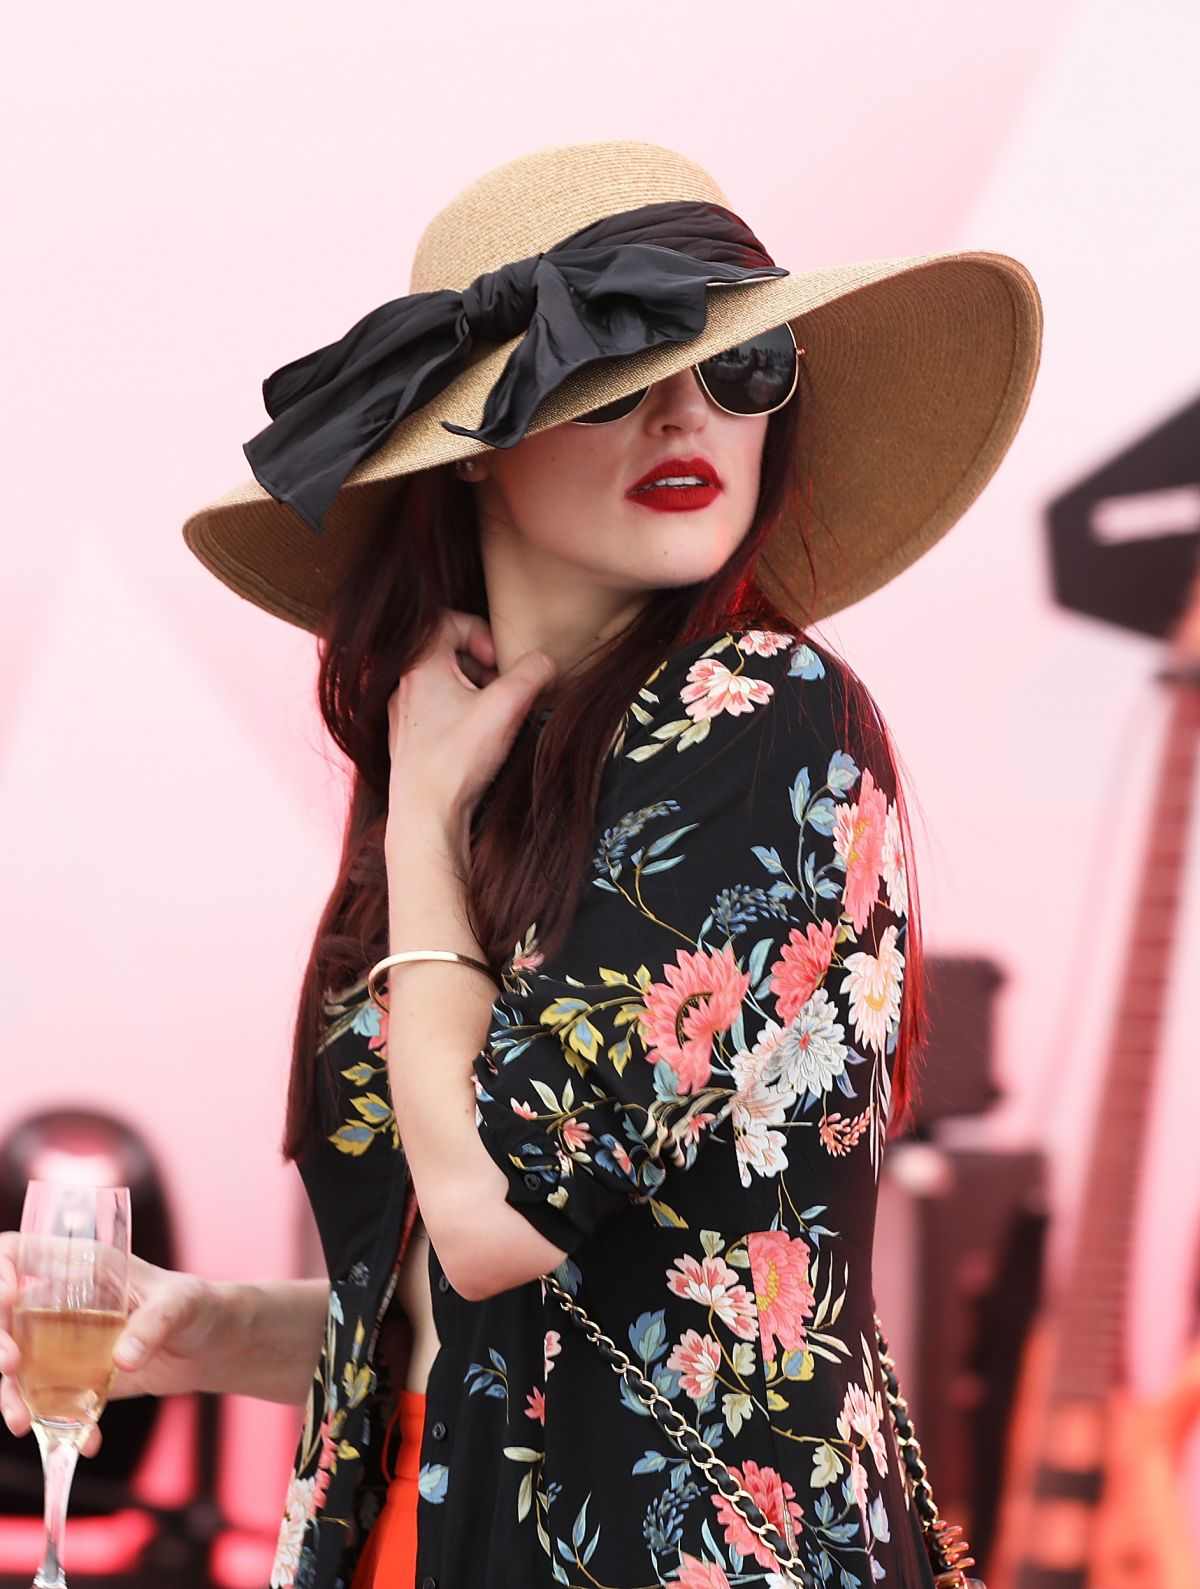 KATIE MCGRATH At Audi Polo Challenge In Berkshire - Mcgrath audi